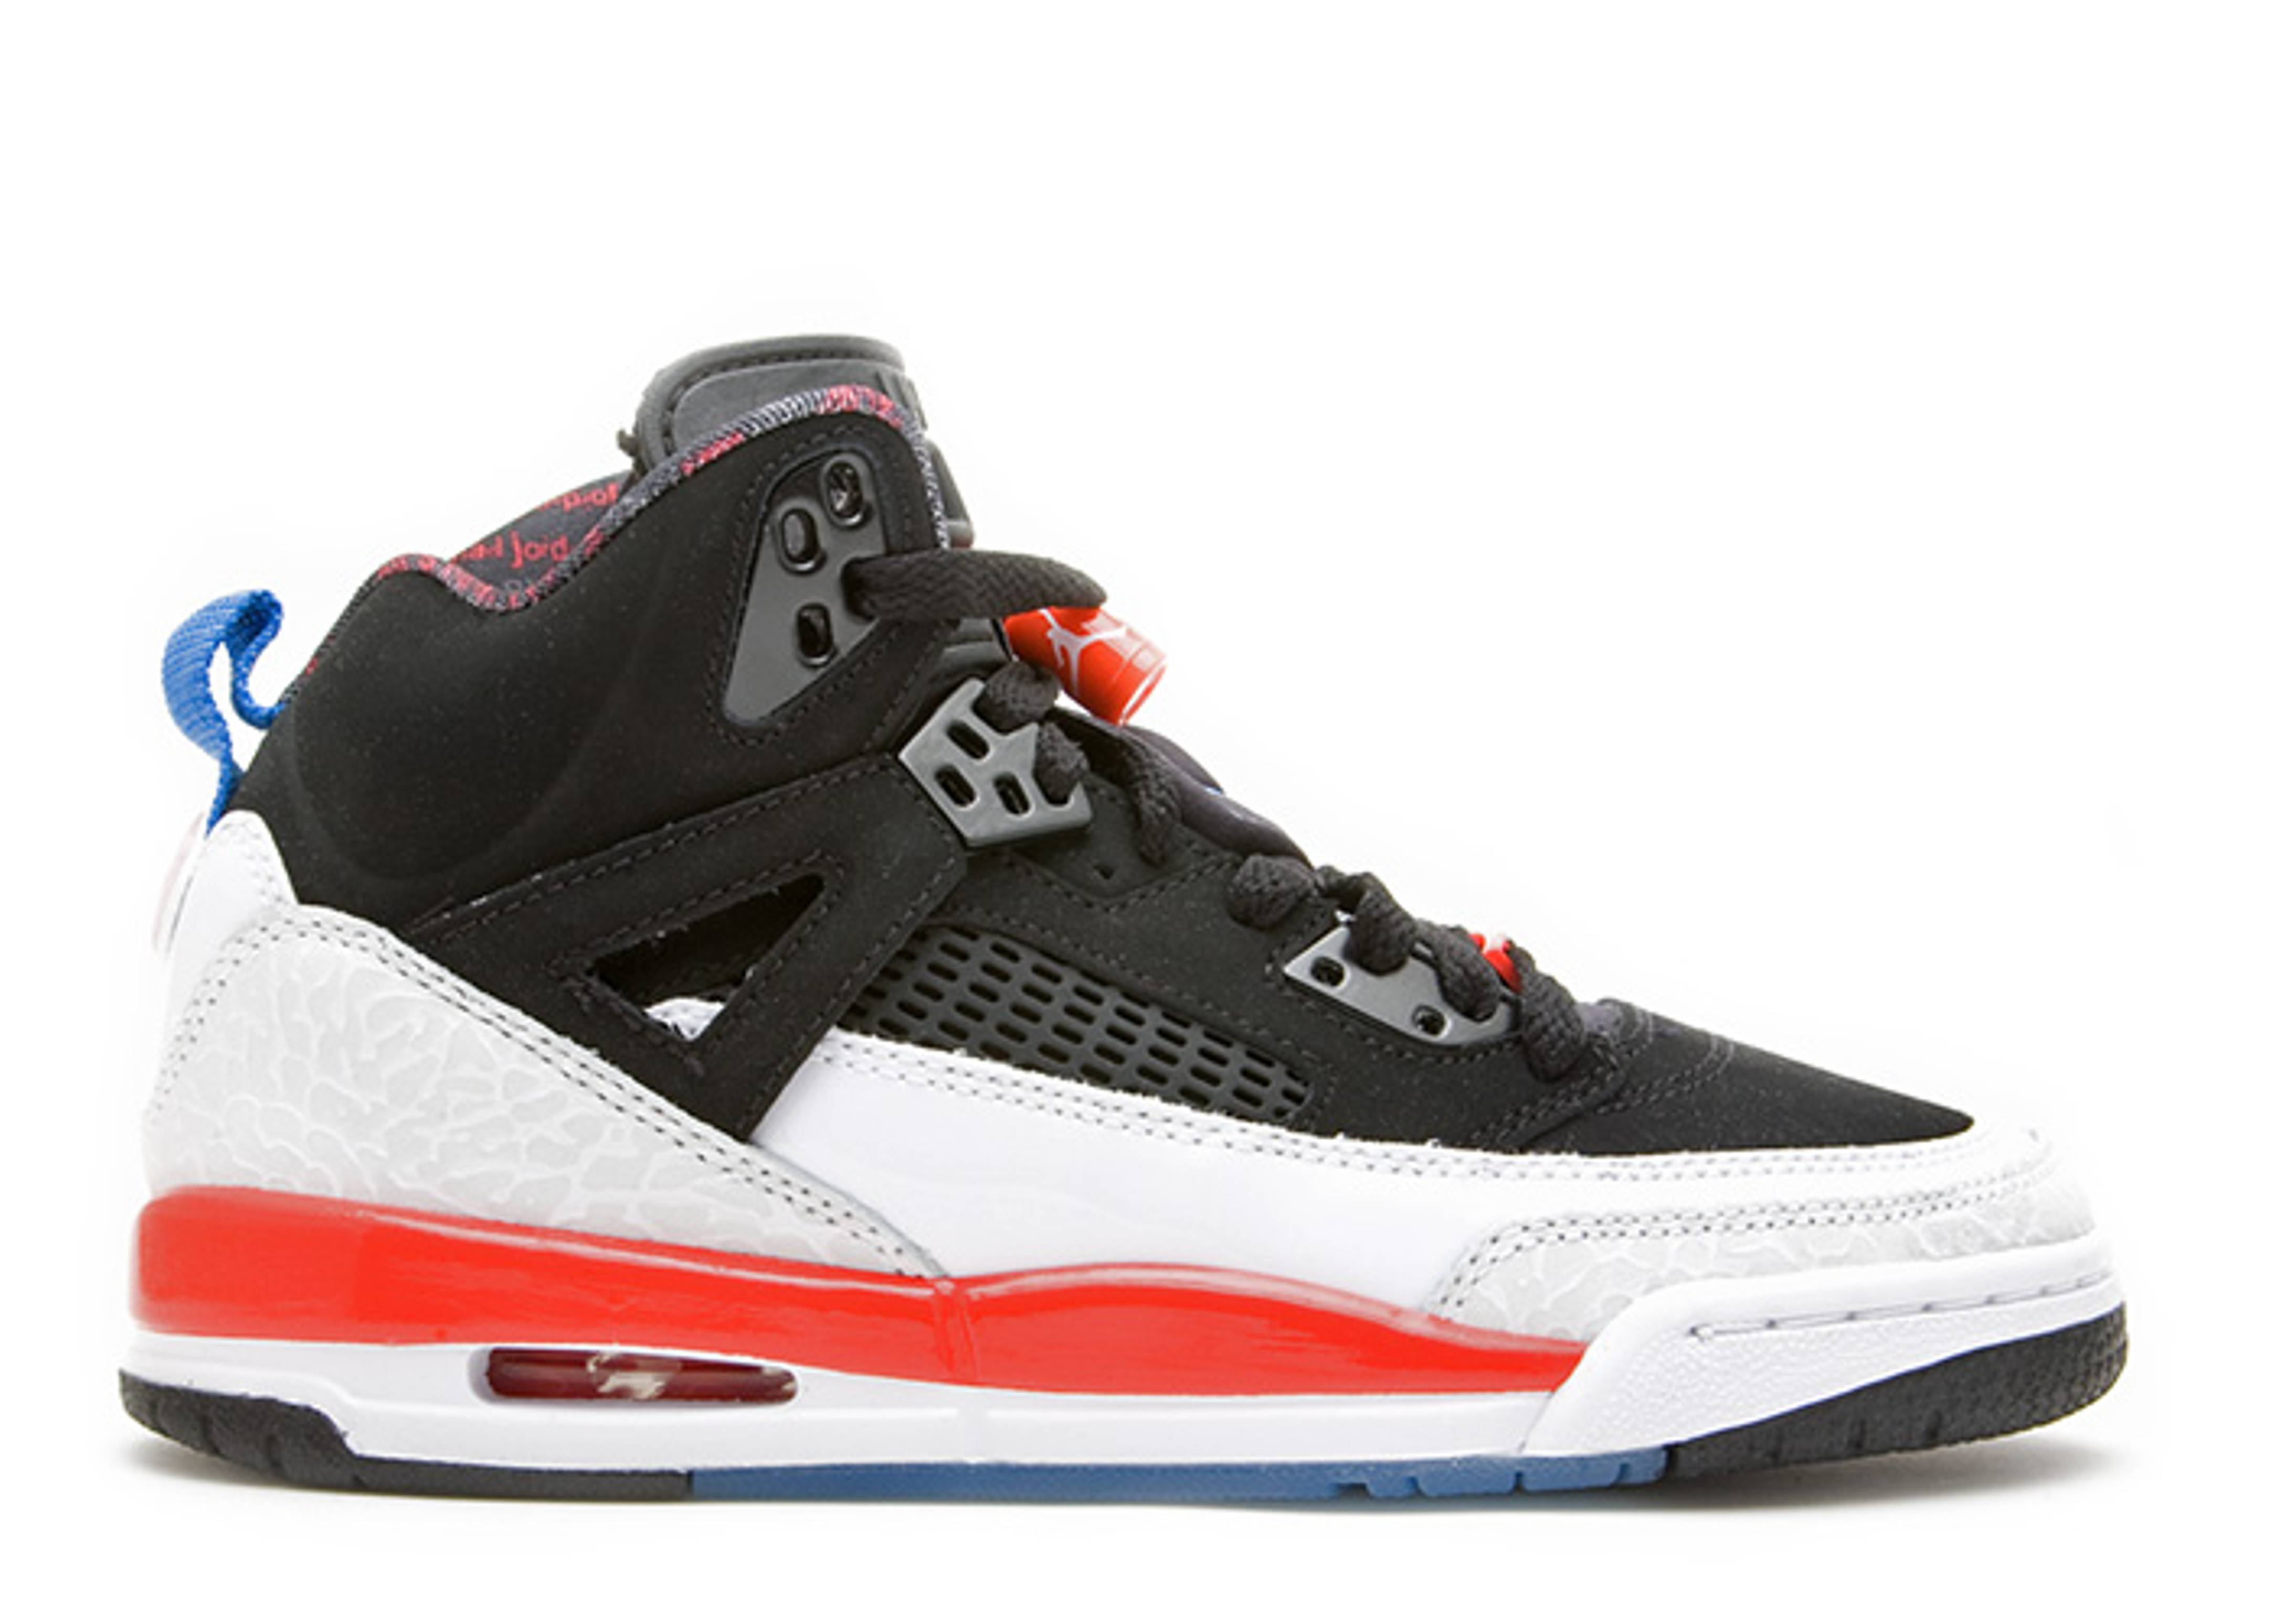 Sz 8 Nike Air Jordan Spizike Black New Blue White Infared